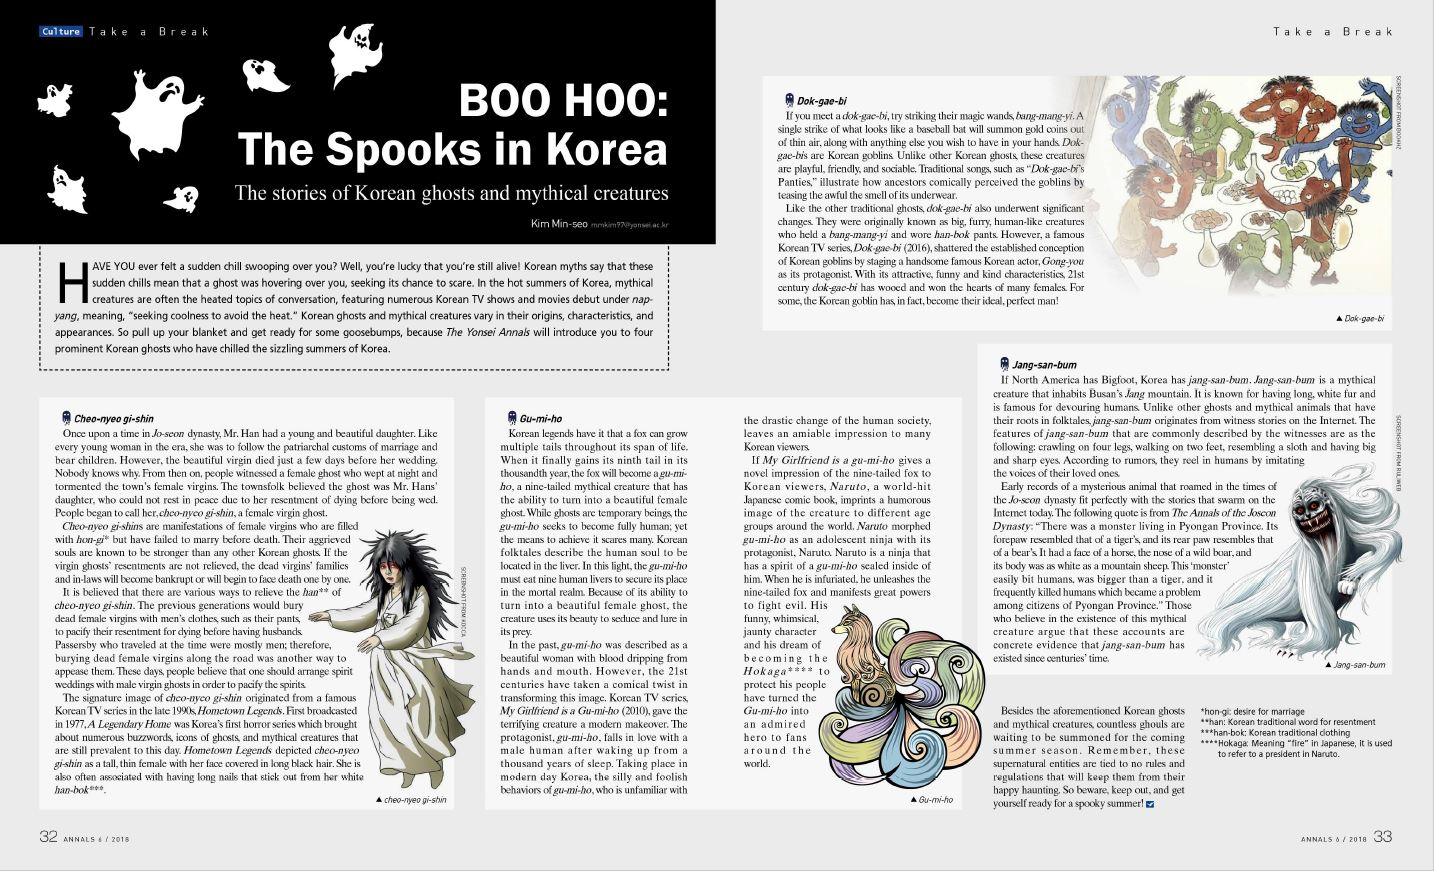 BOO HOO: The Spooks in Korea